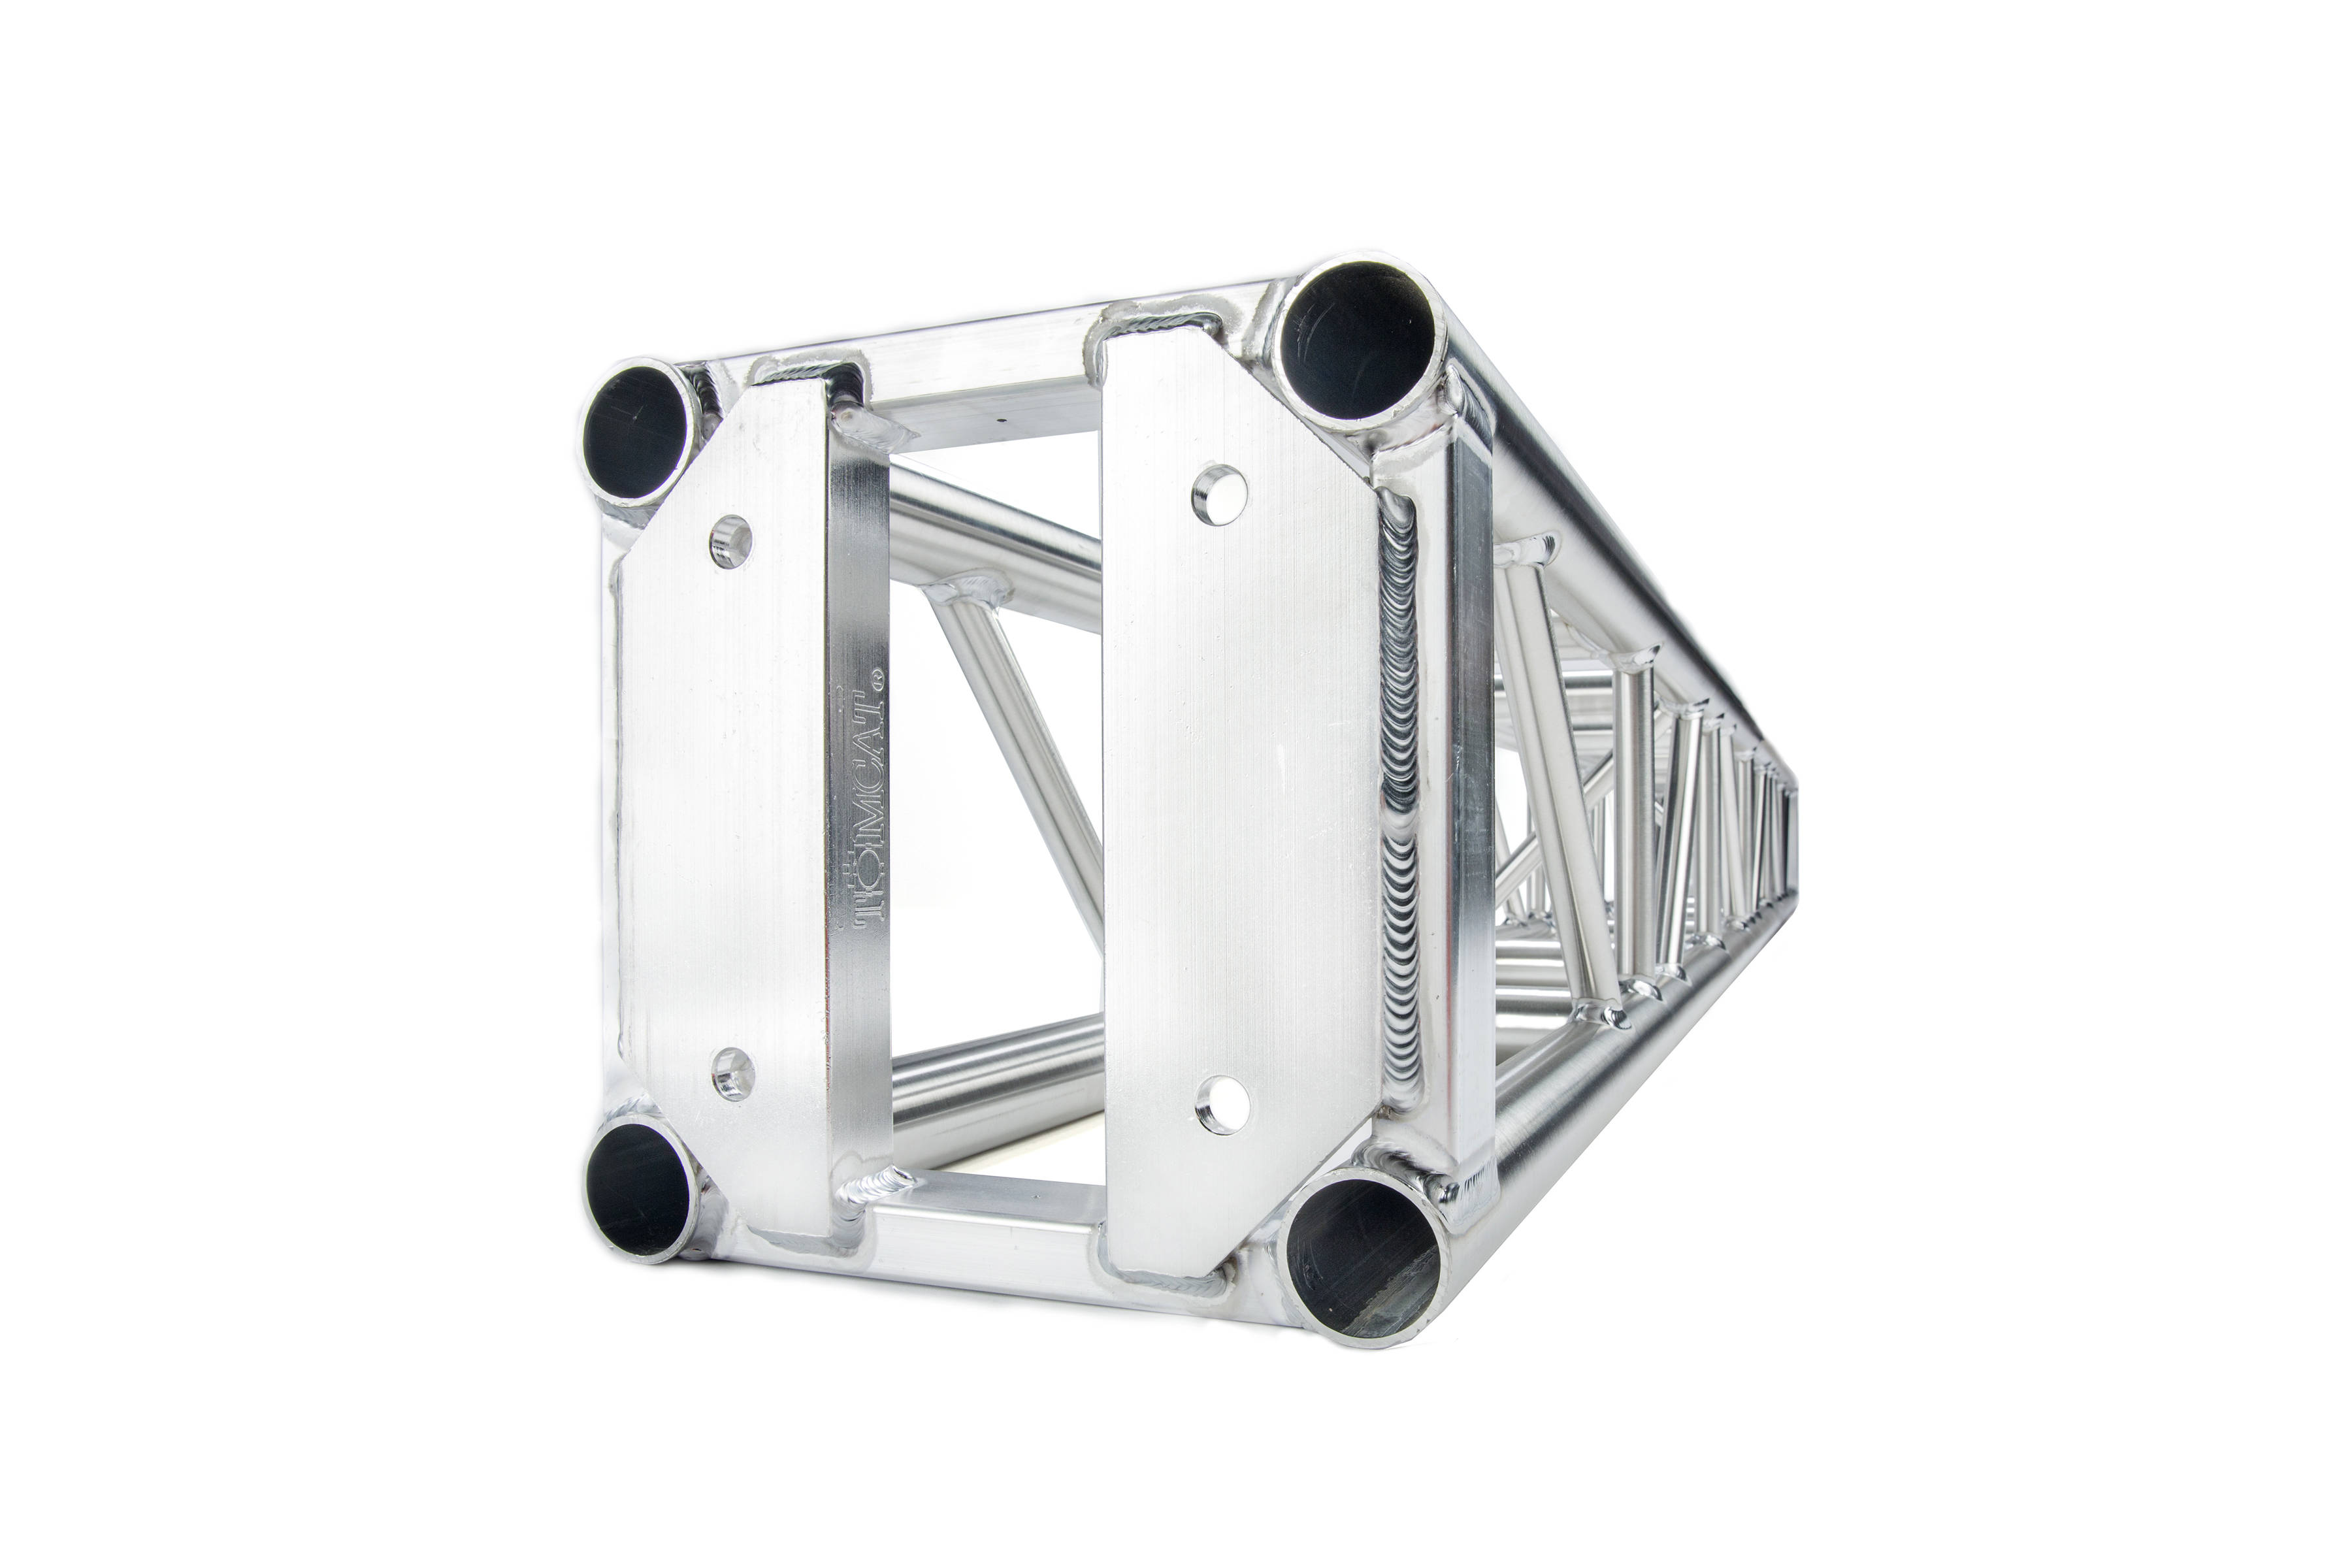 Light-duty truss 12 x 12 plated